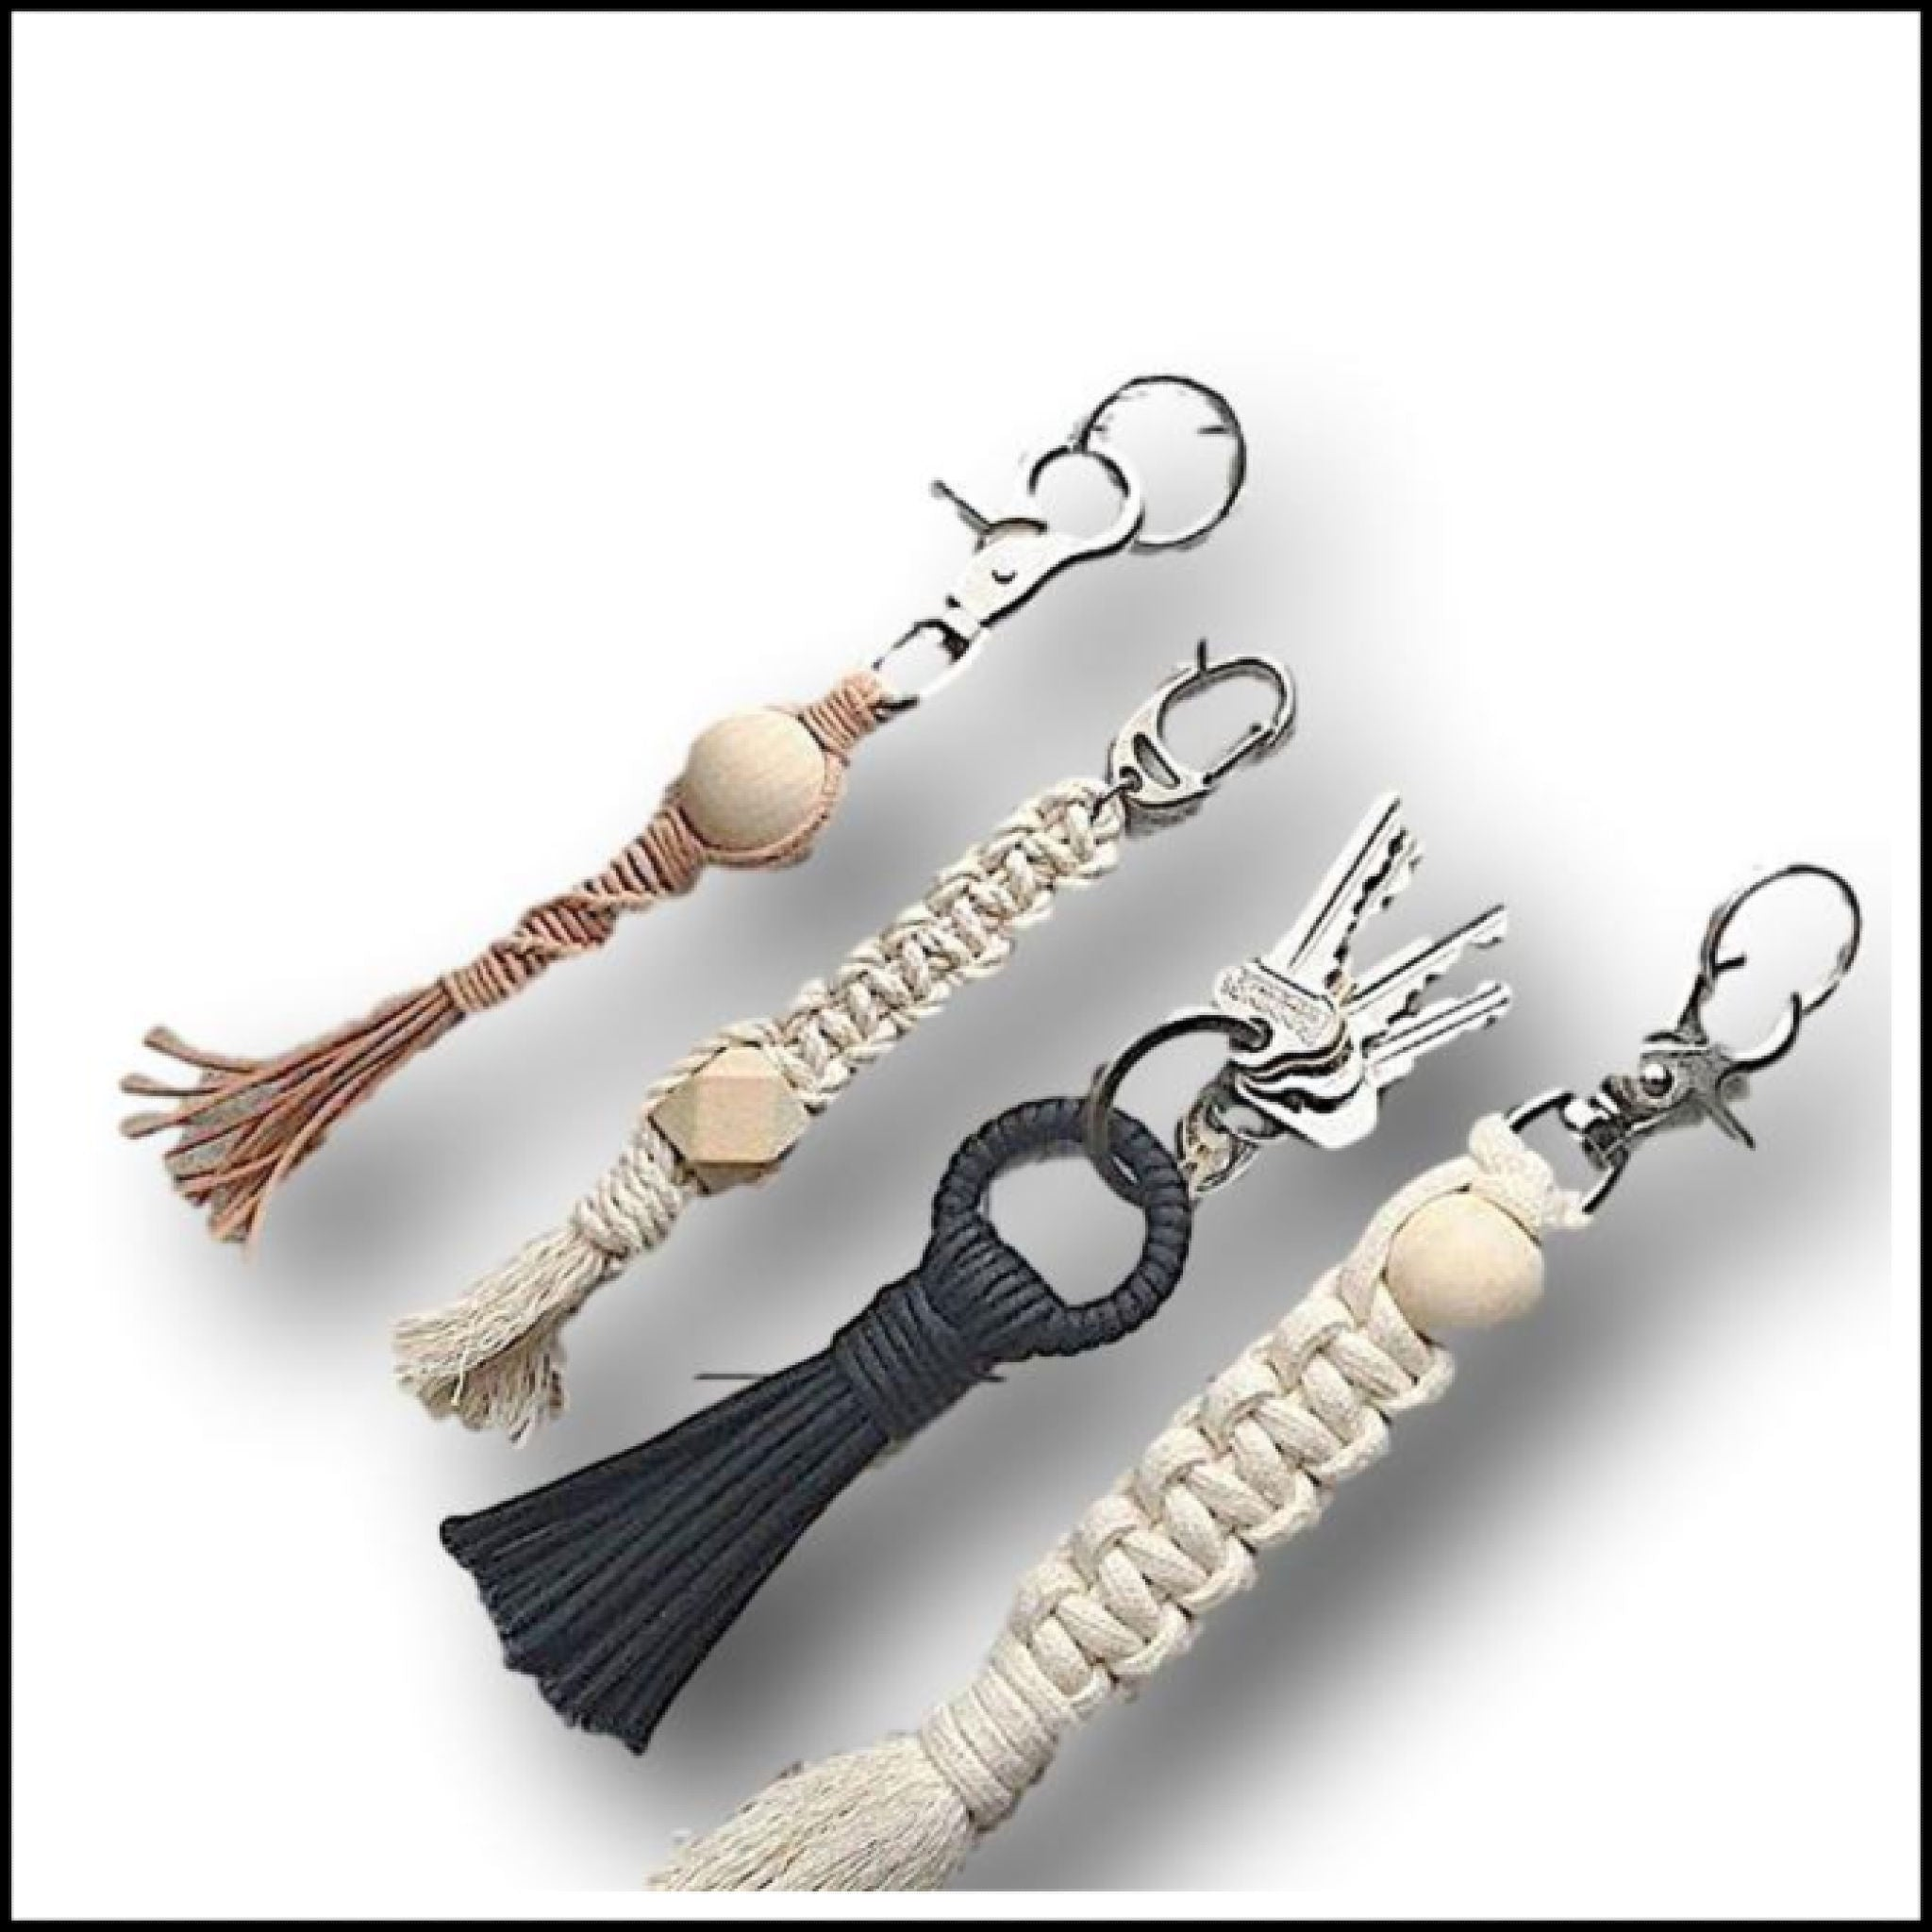 Macrame Key Ring or Bag Charm made bespoke to your order any design